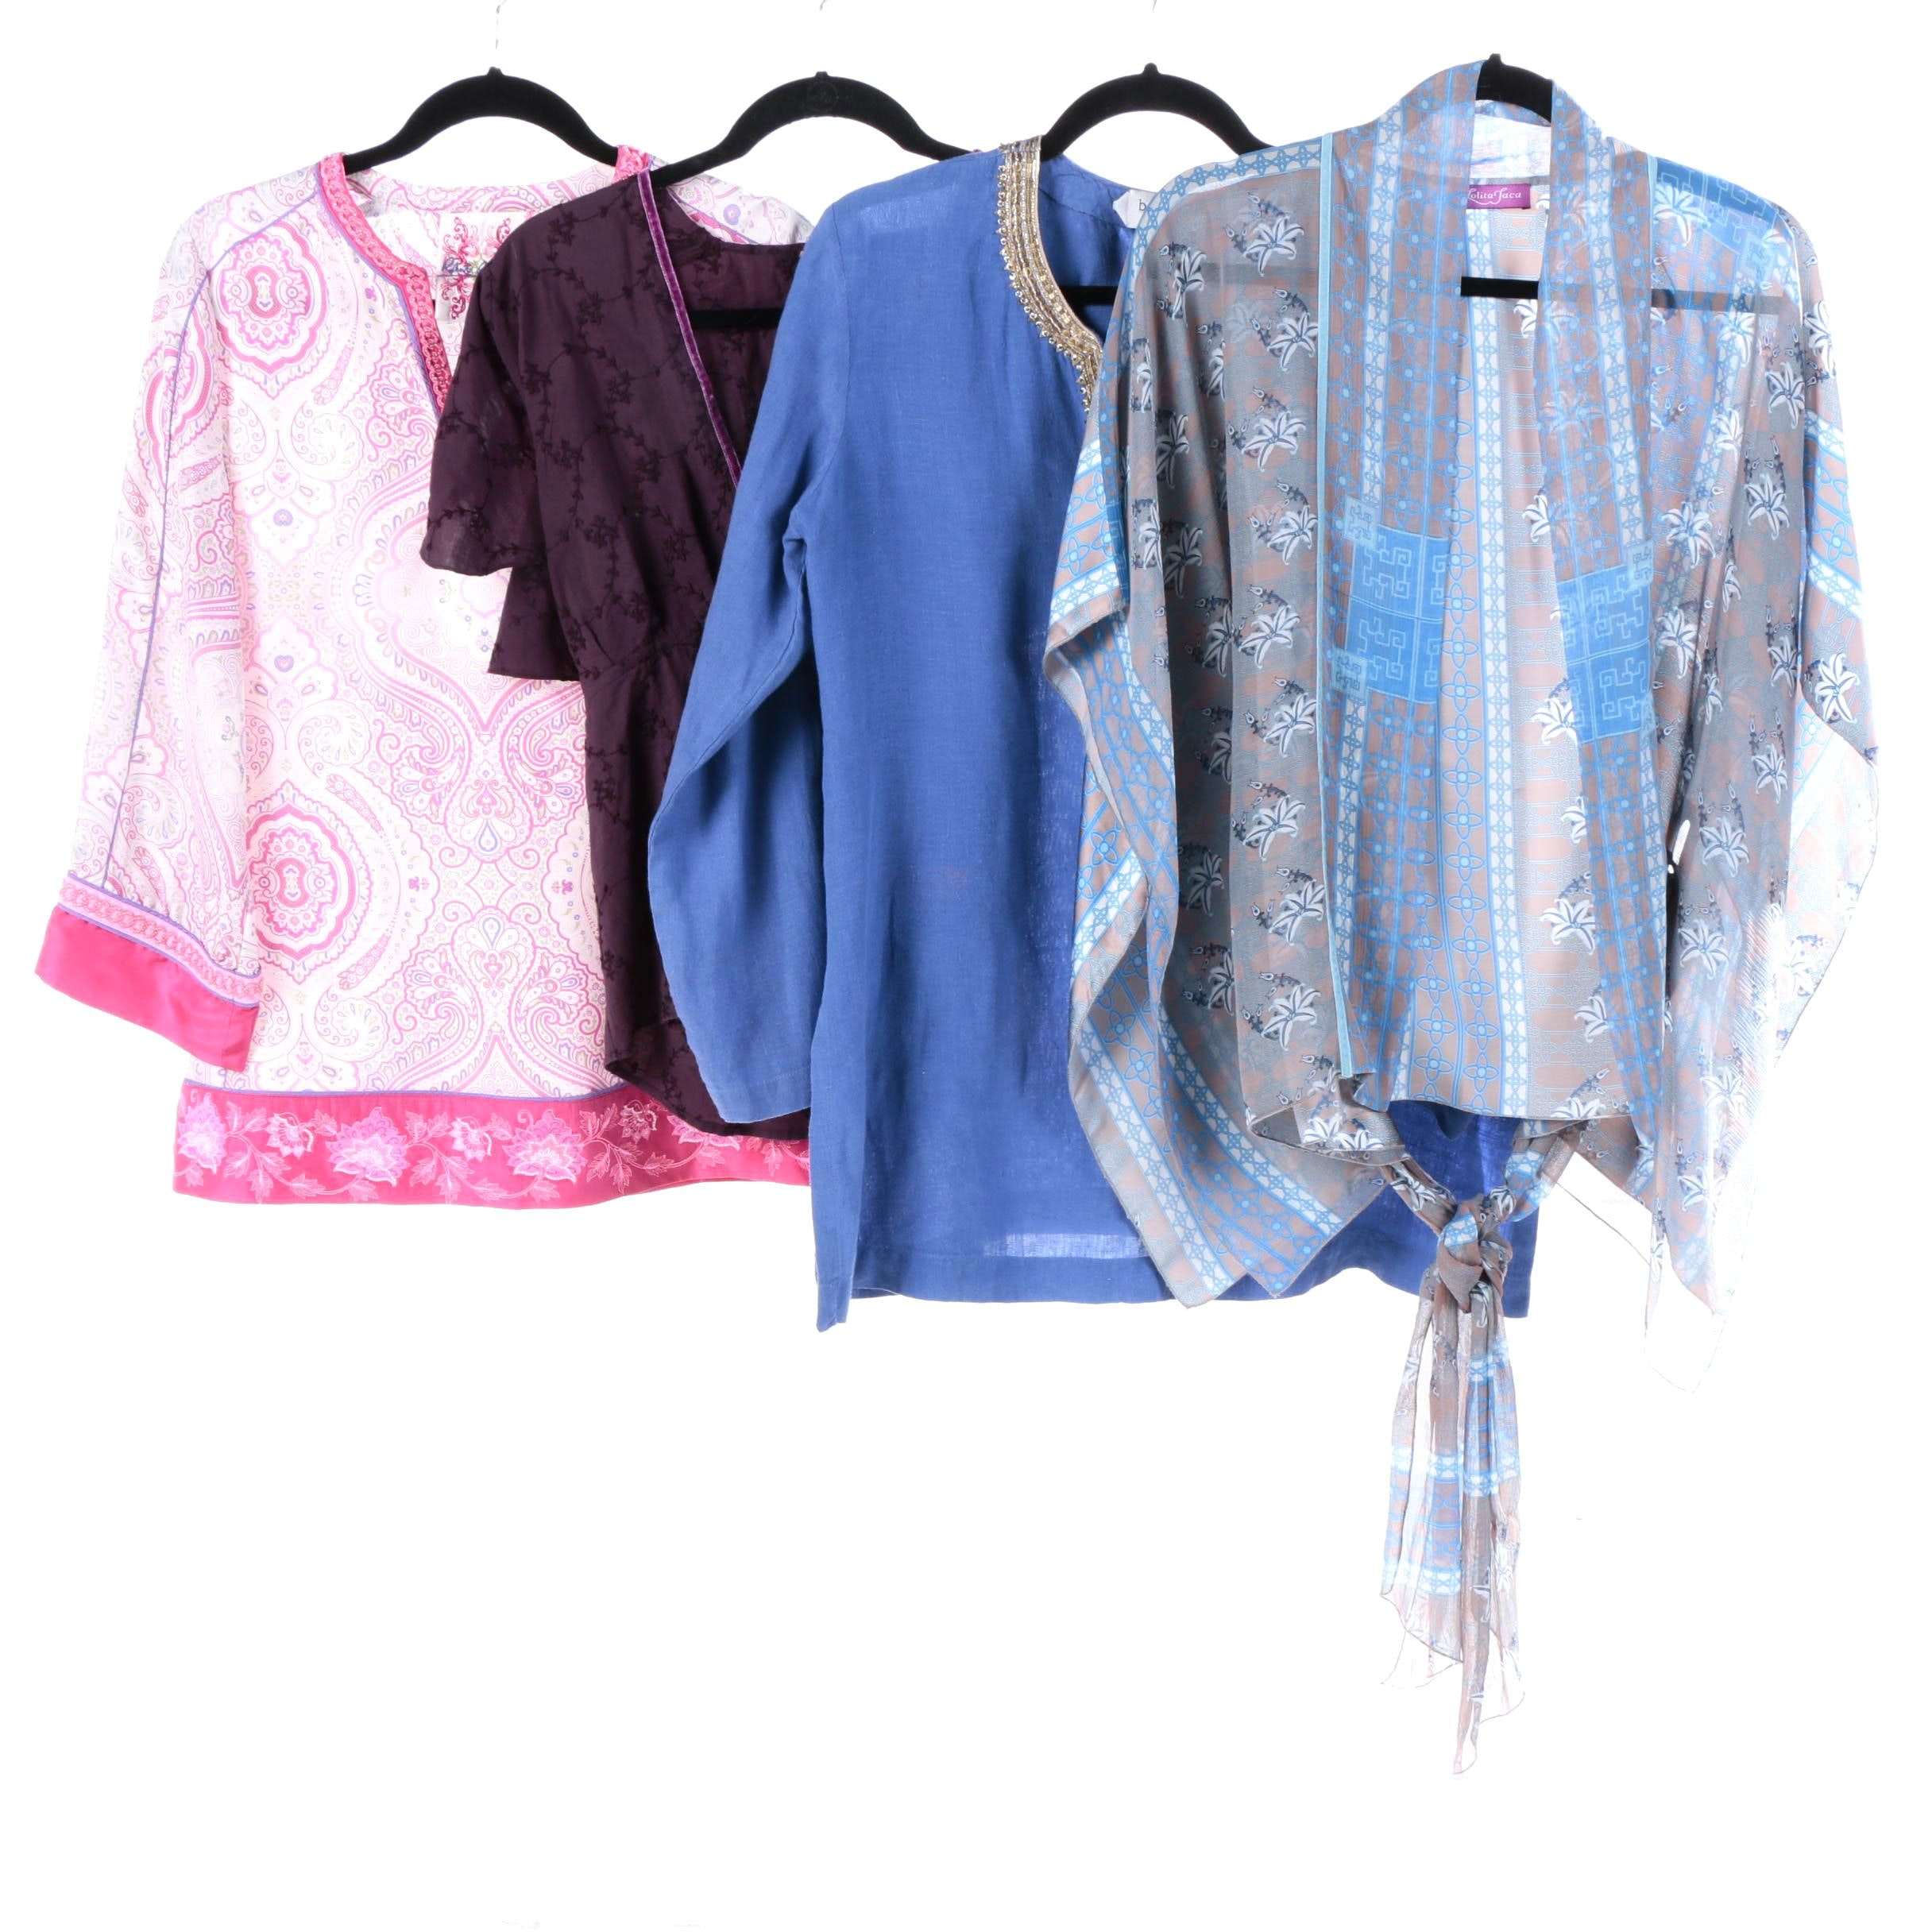 Women's Tunics and Tops Including Robert Graham and Lolita Jaca